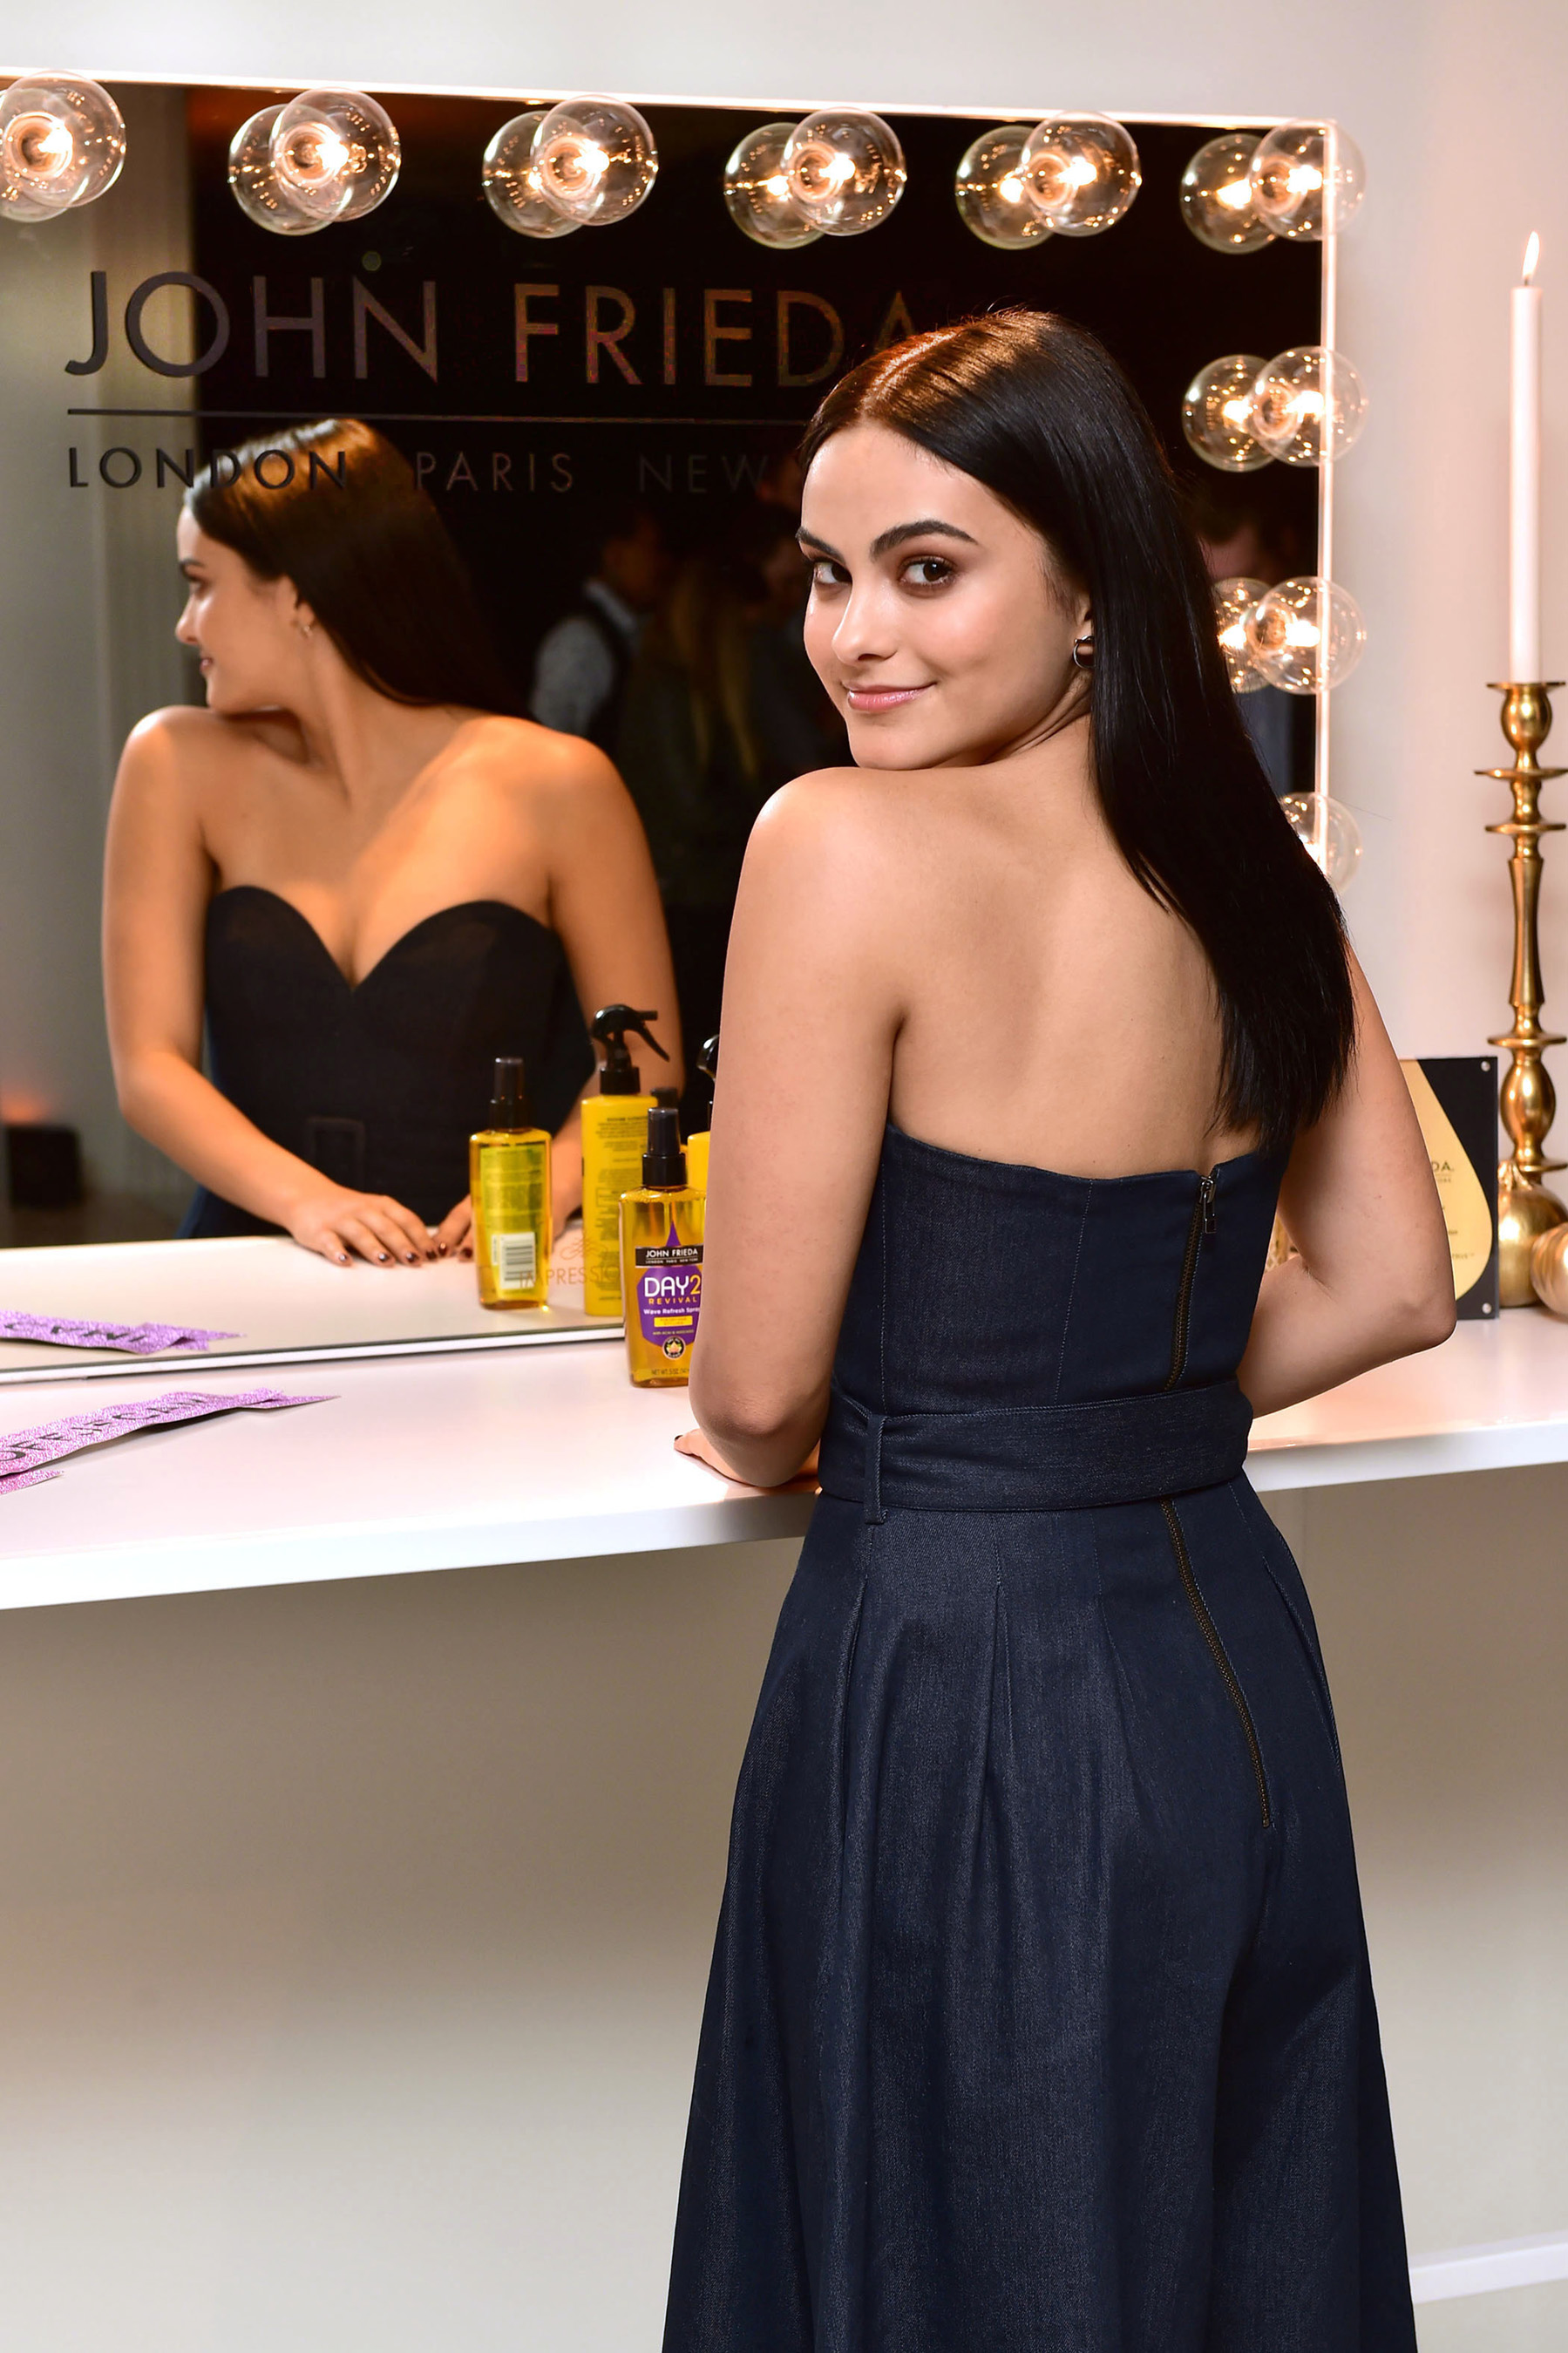 John Frieda® Hair Care and Camila Mendes Debut New Day 2